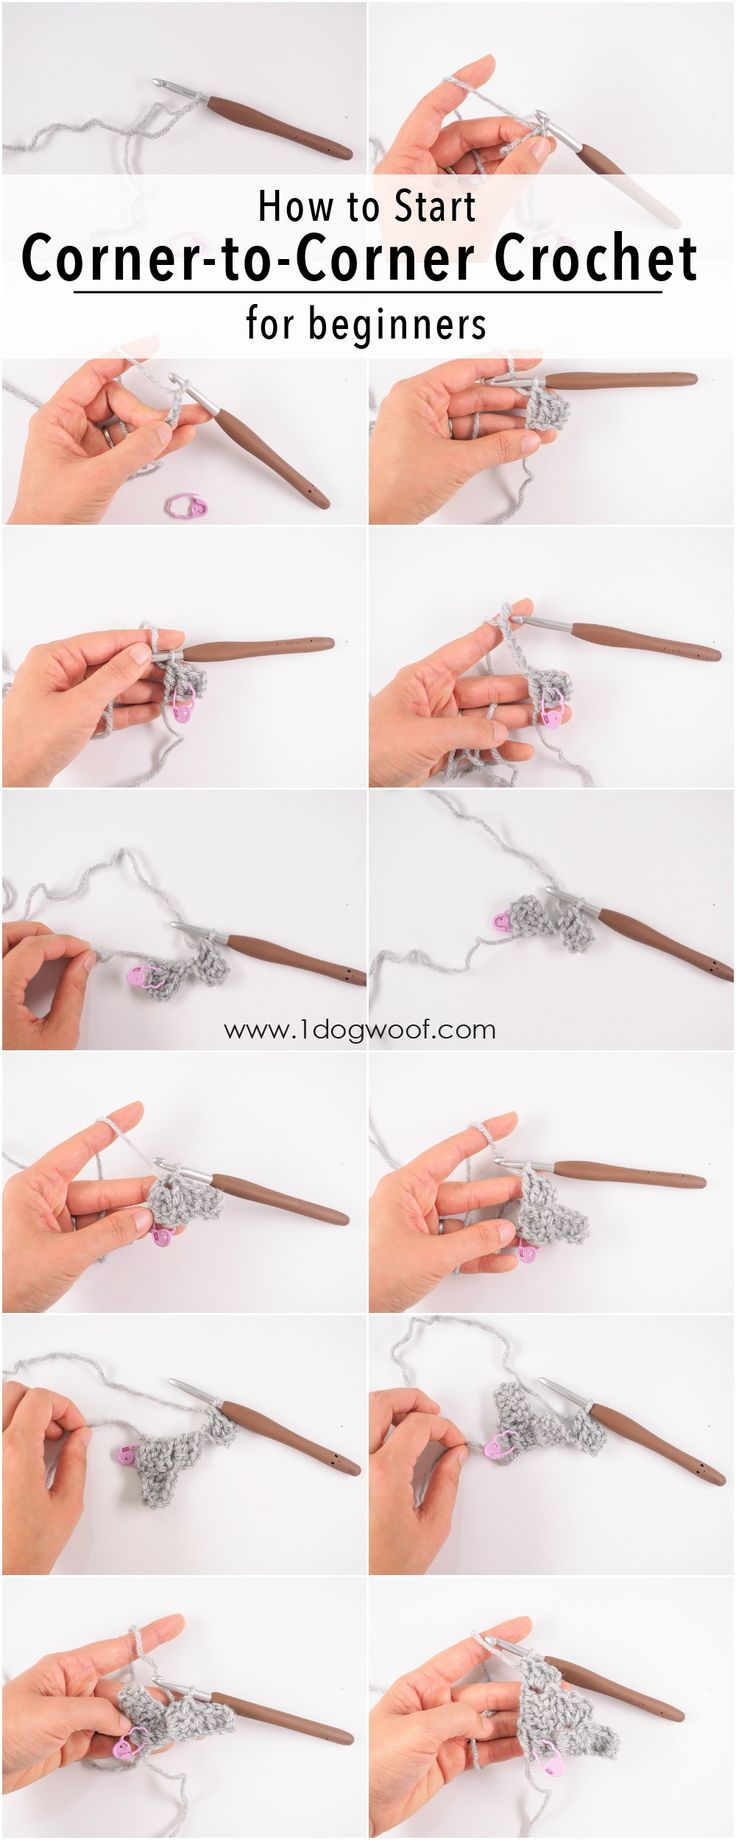 Knitting Tips And Tricks For Beginners : Best crochet tips and tricks images on pinterest